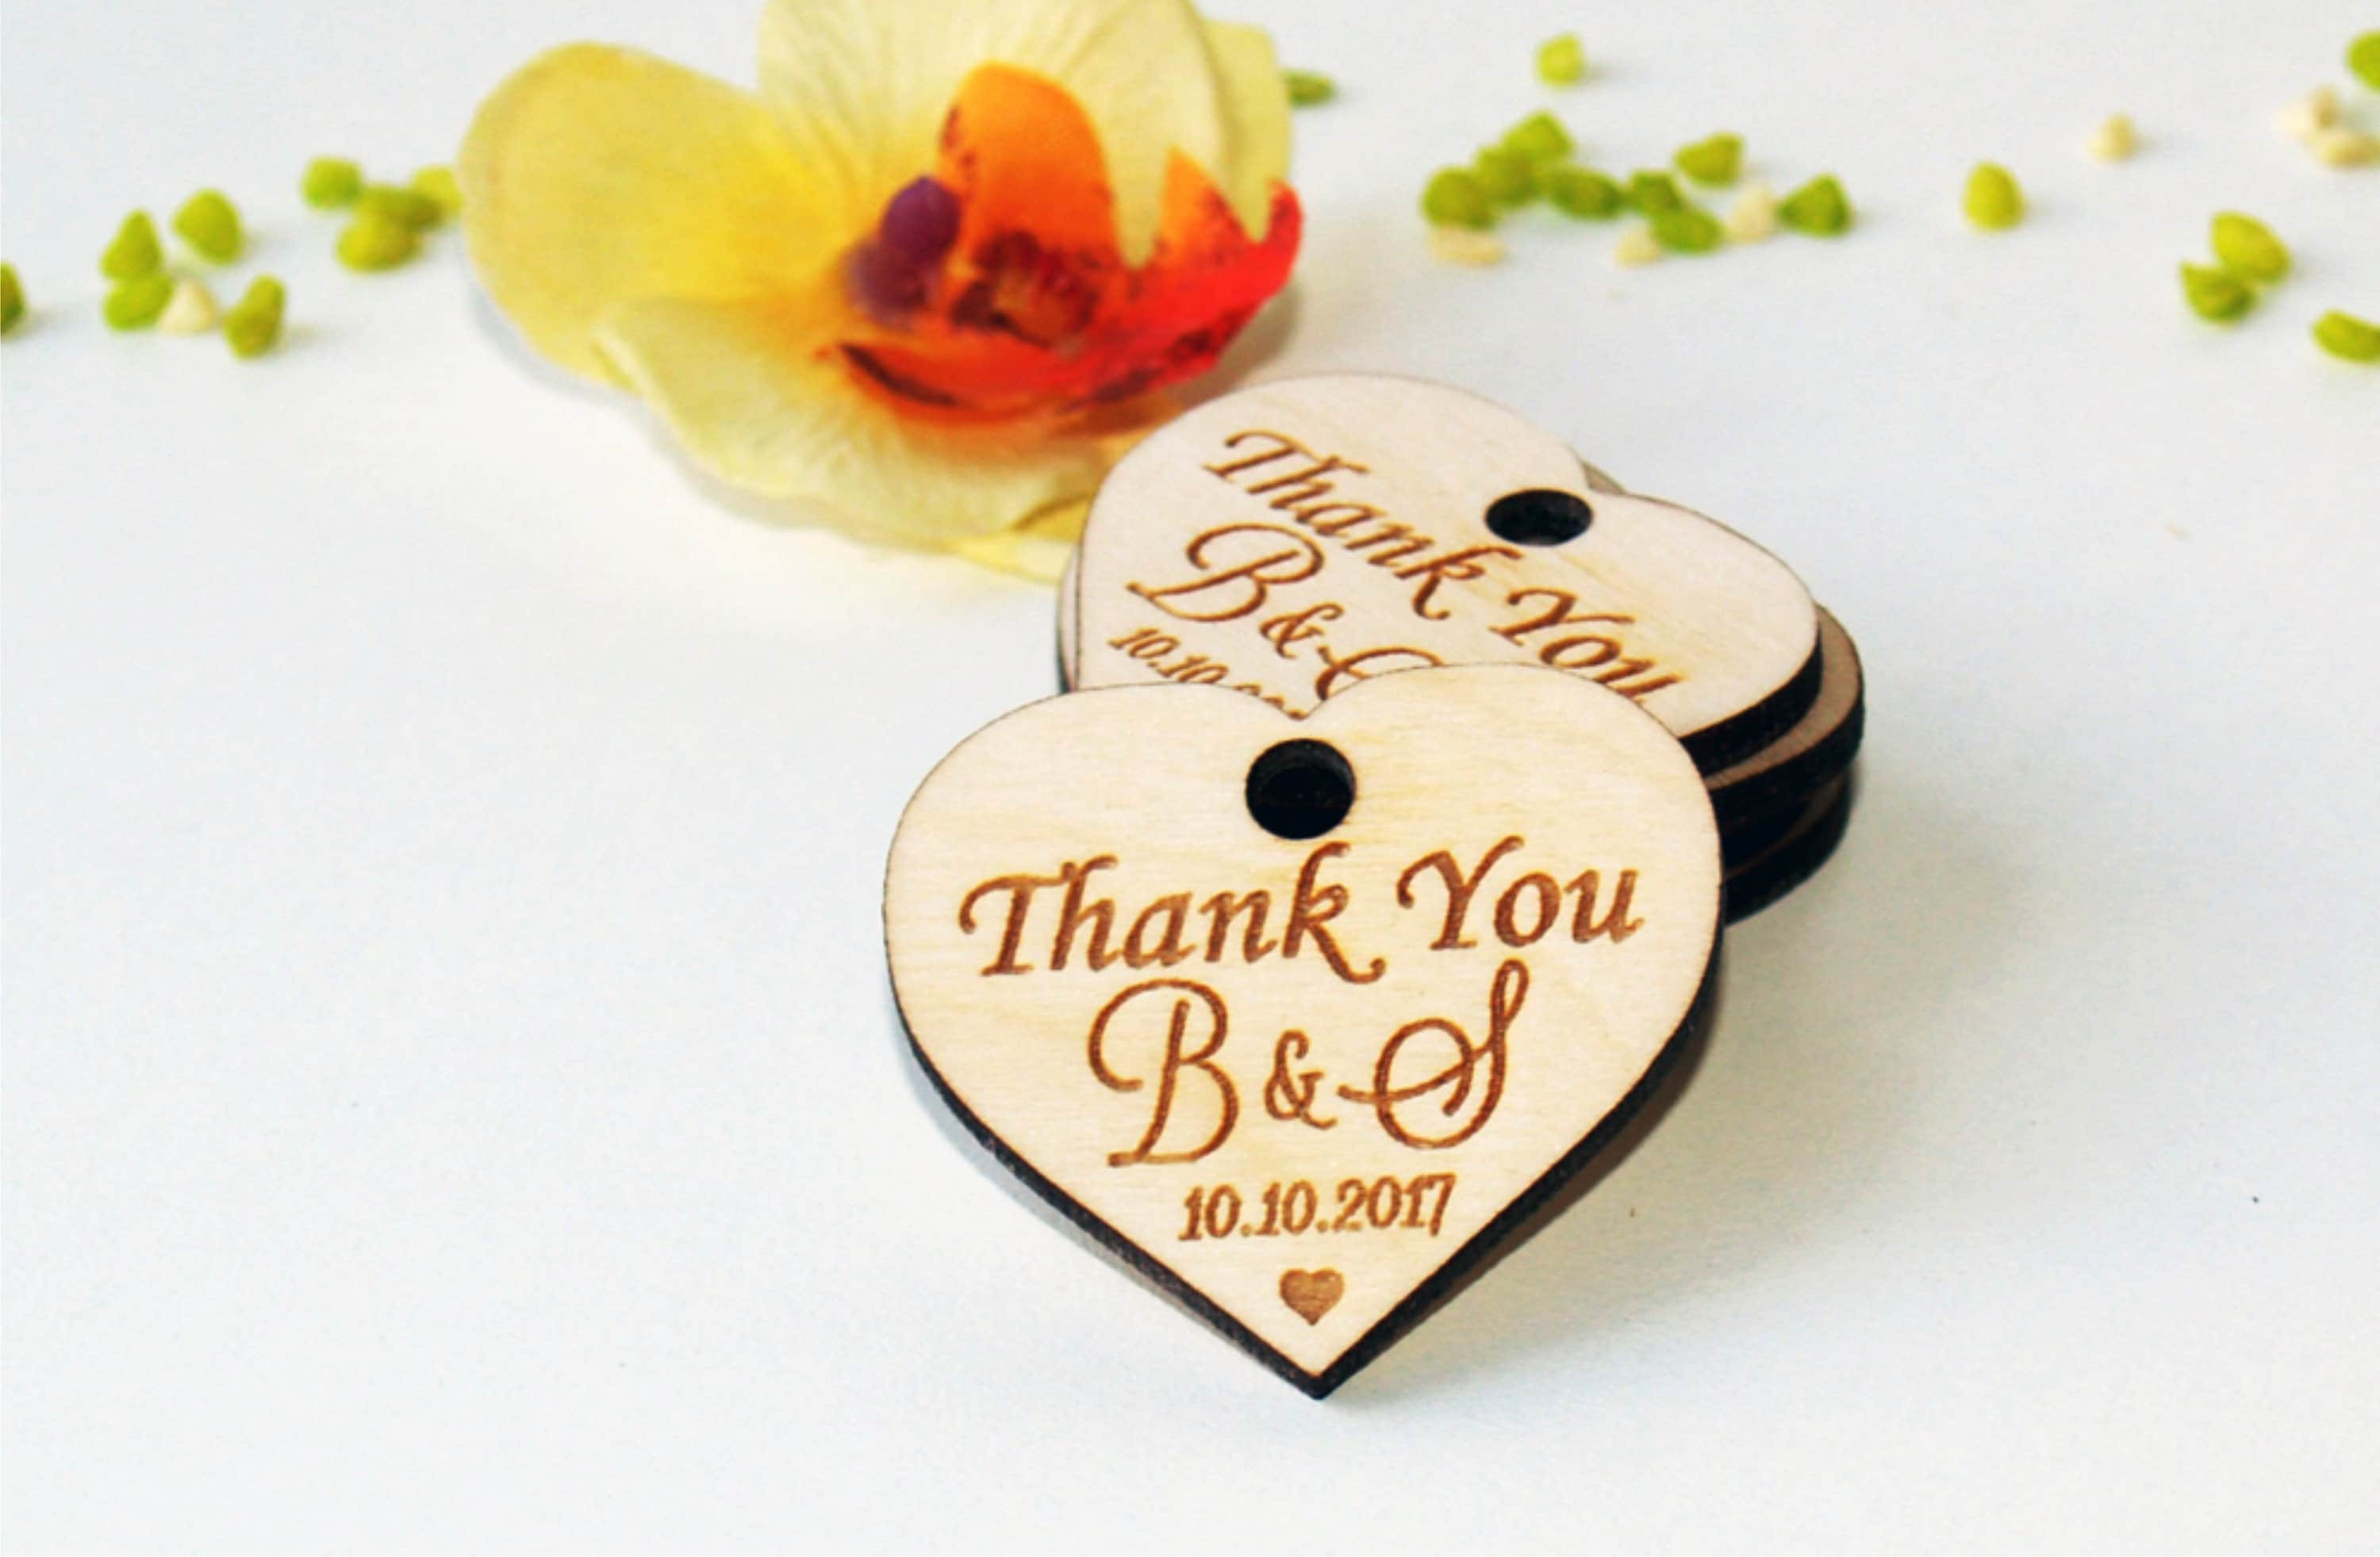 Thank you wood wedding tags Wedding favors Gift tags